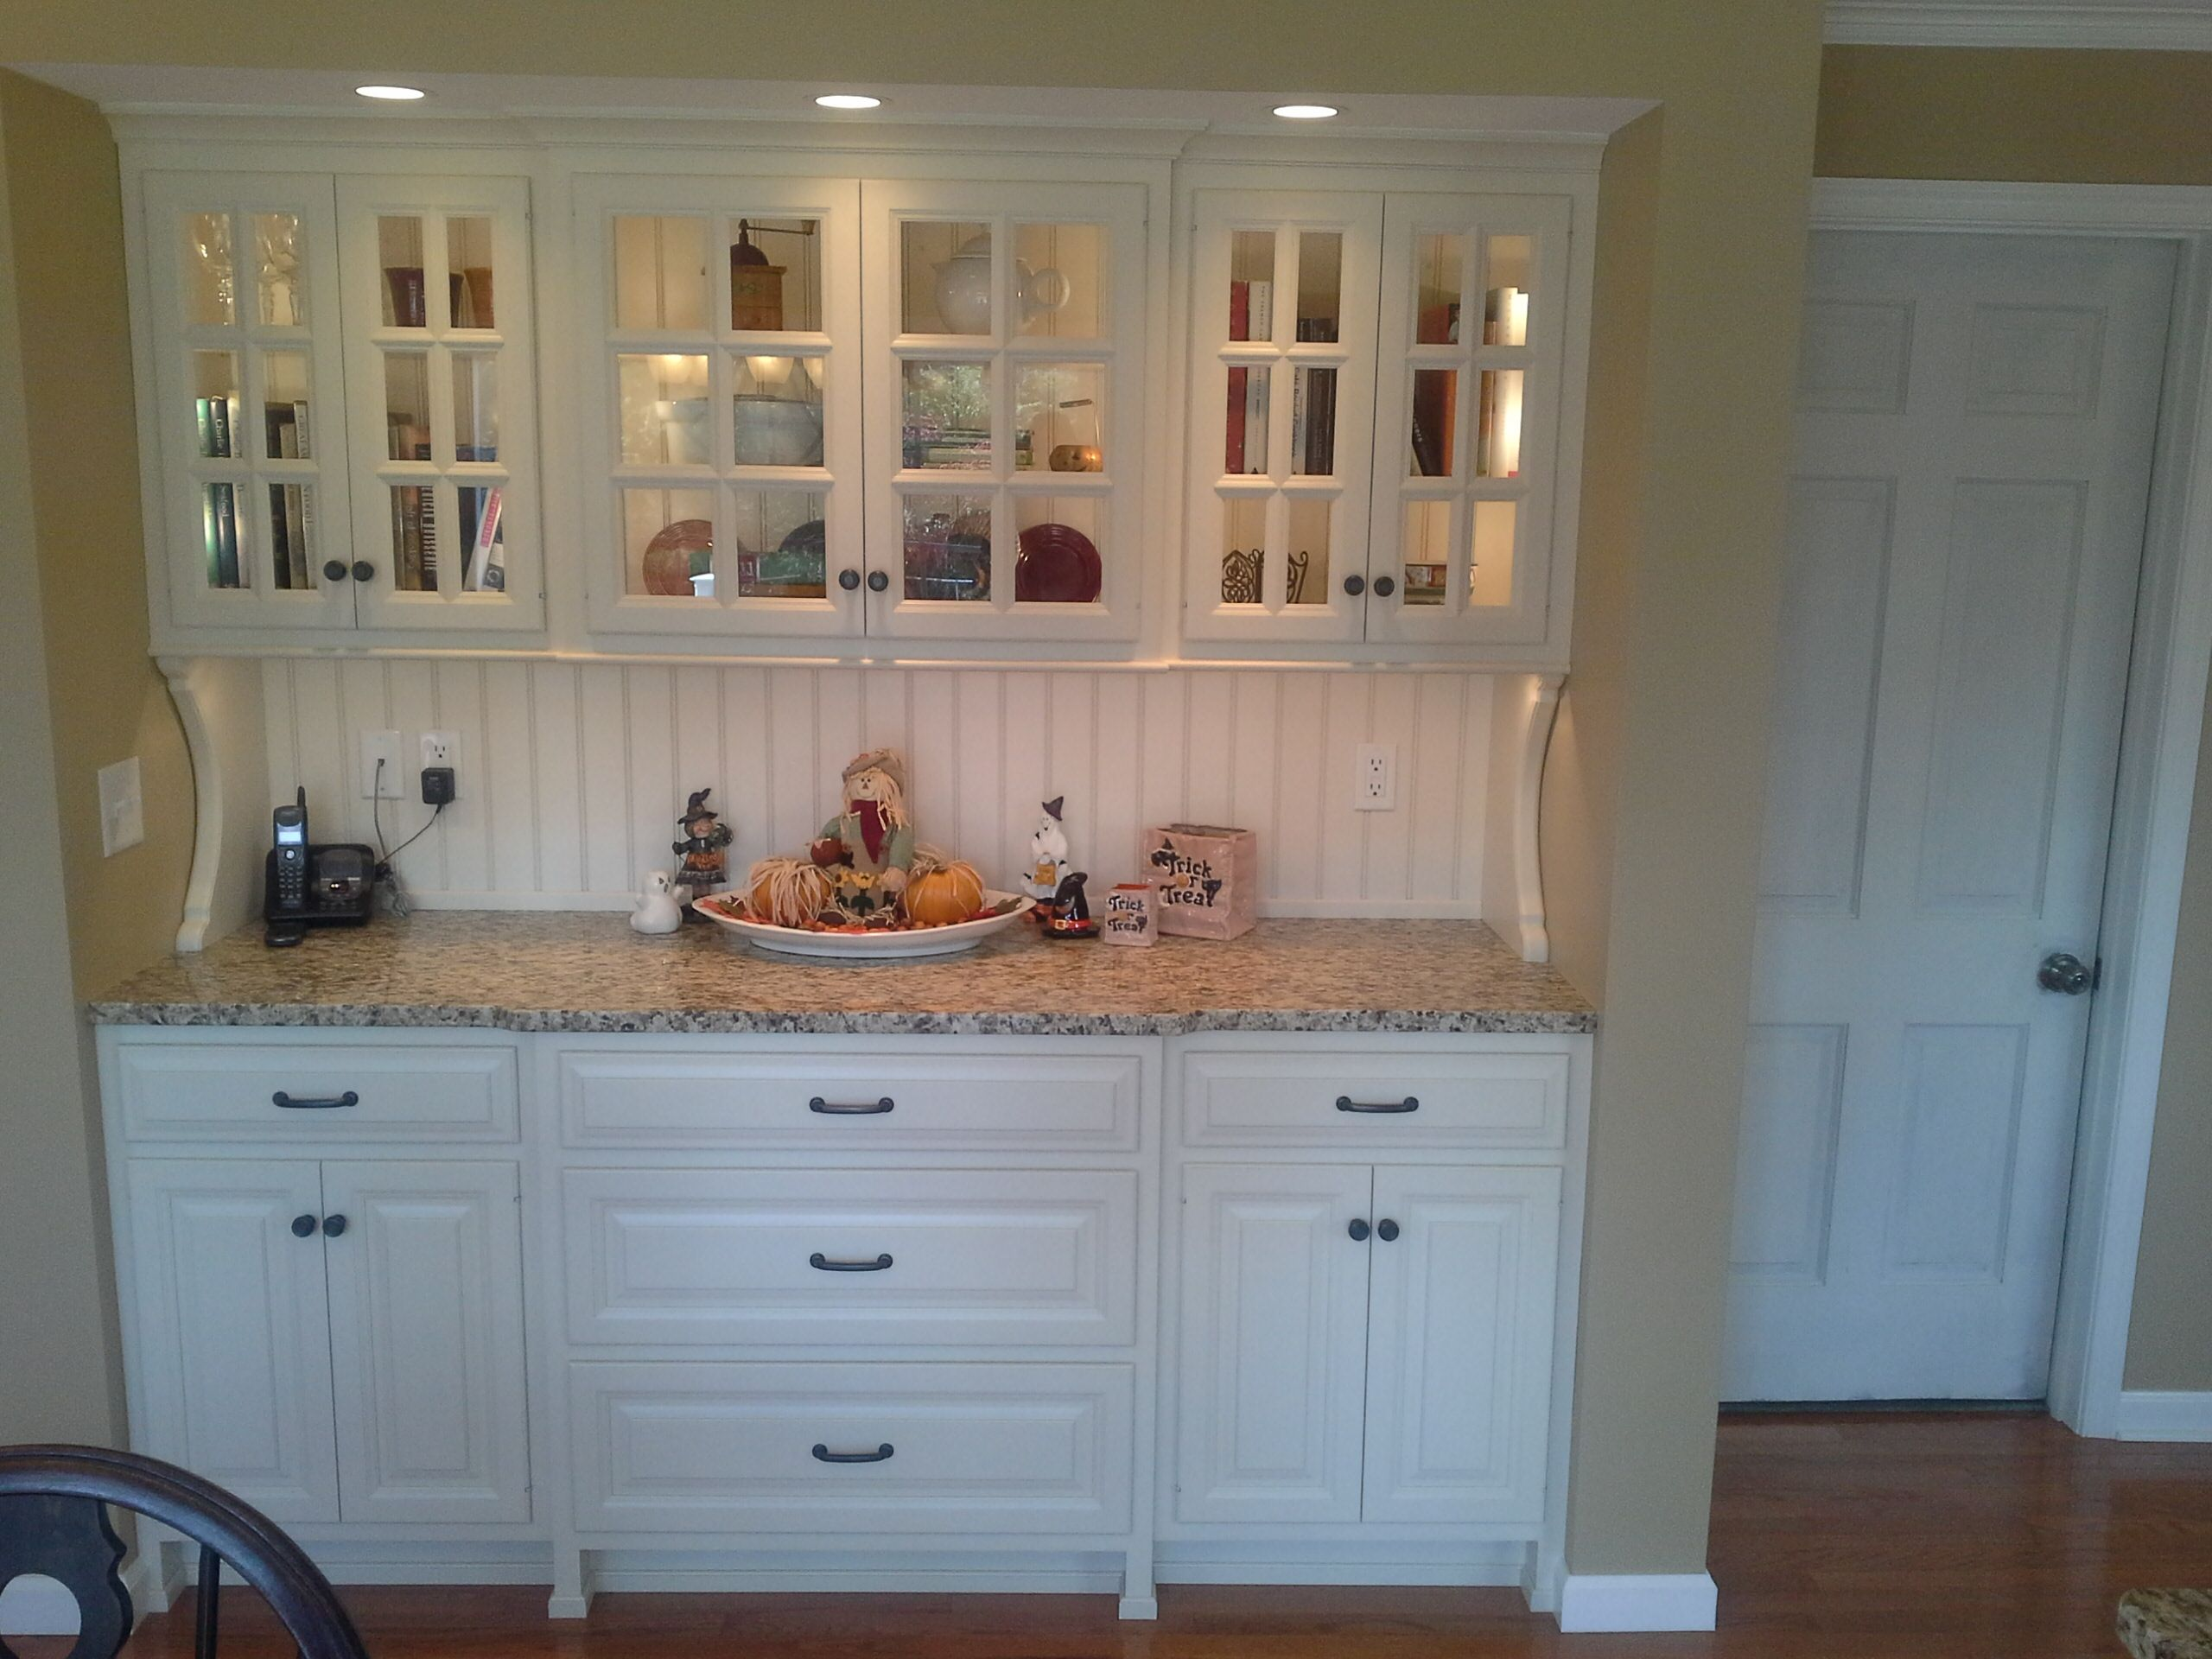 this custom kitchen design features a white painted hutch with